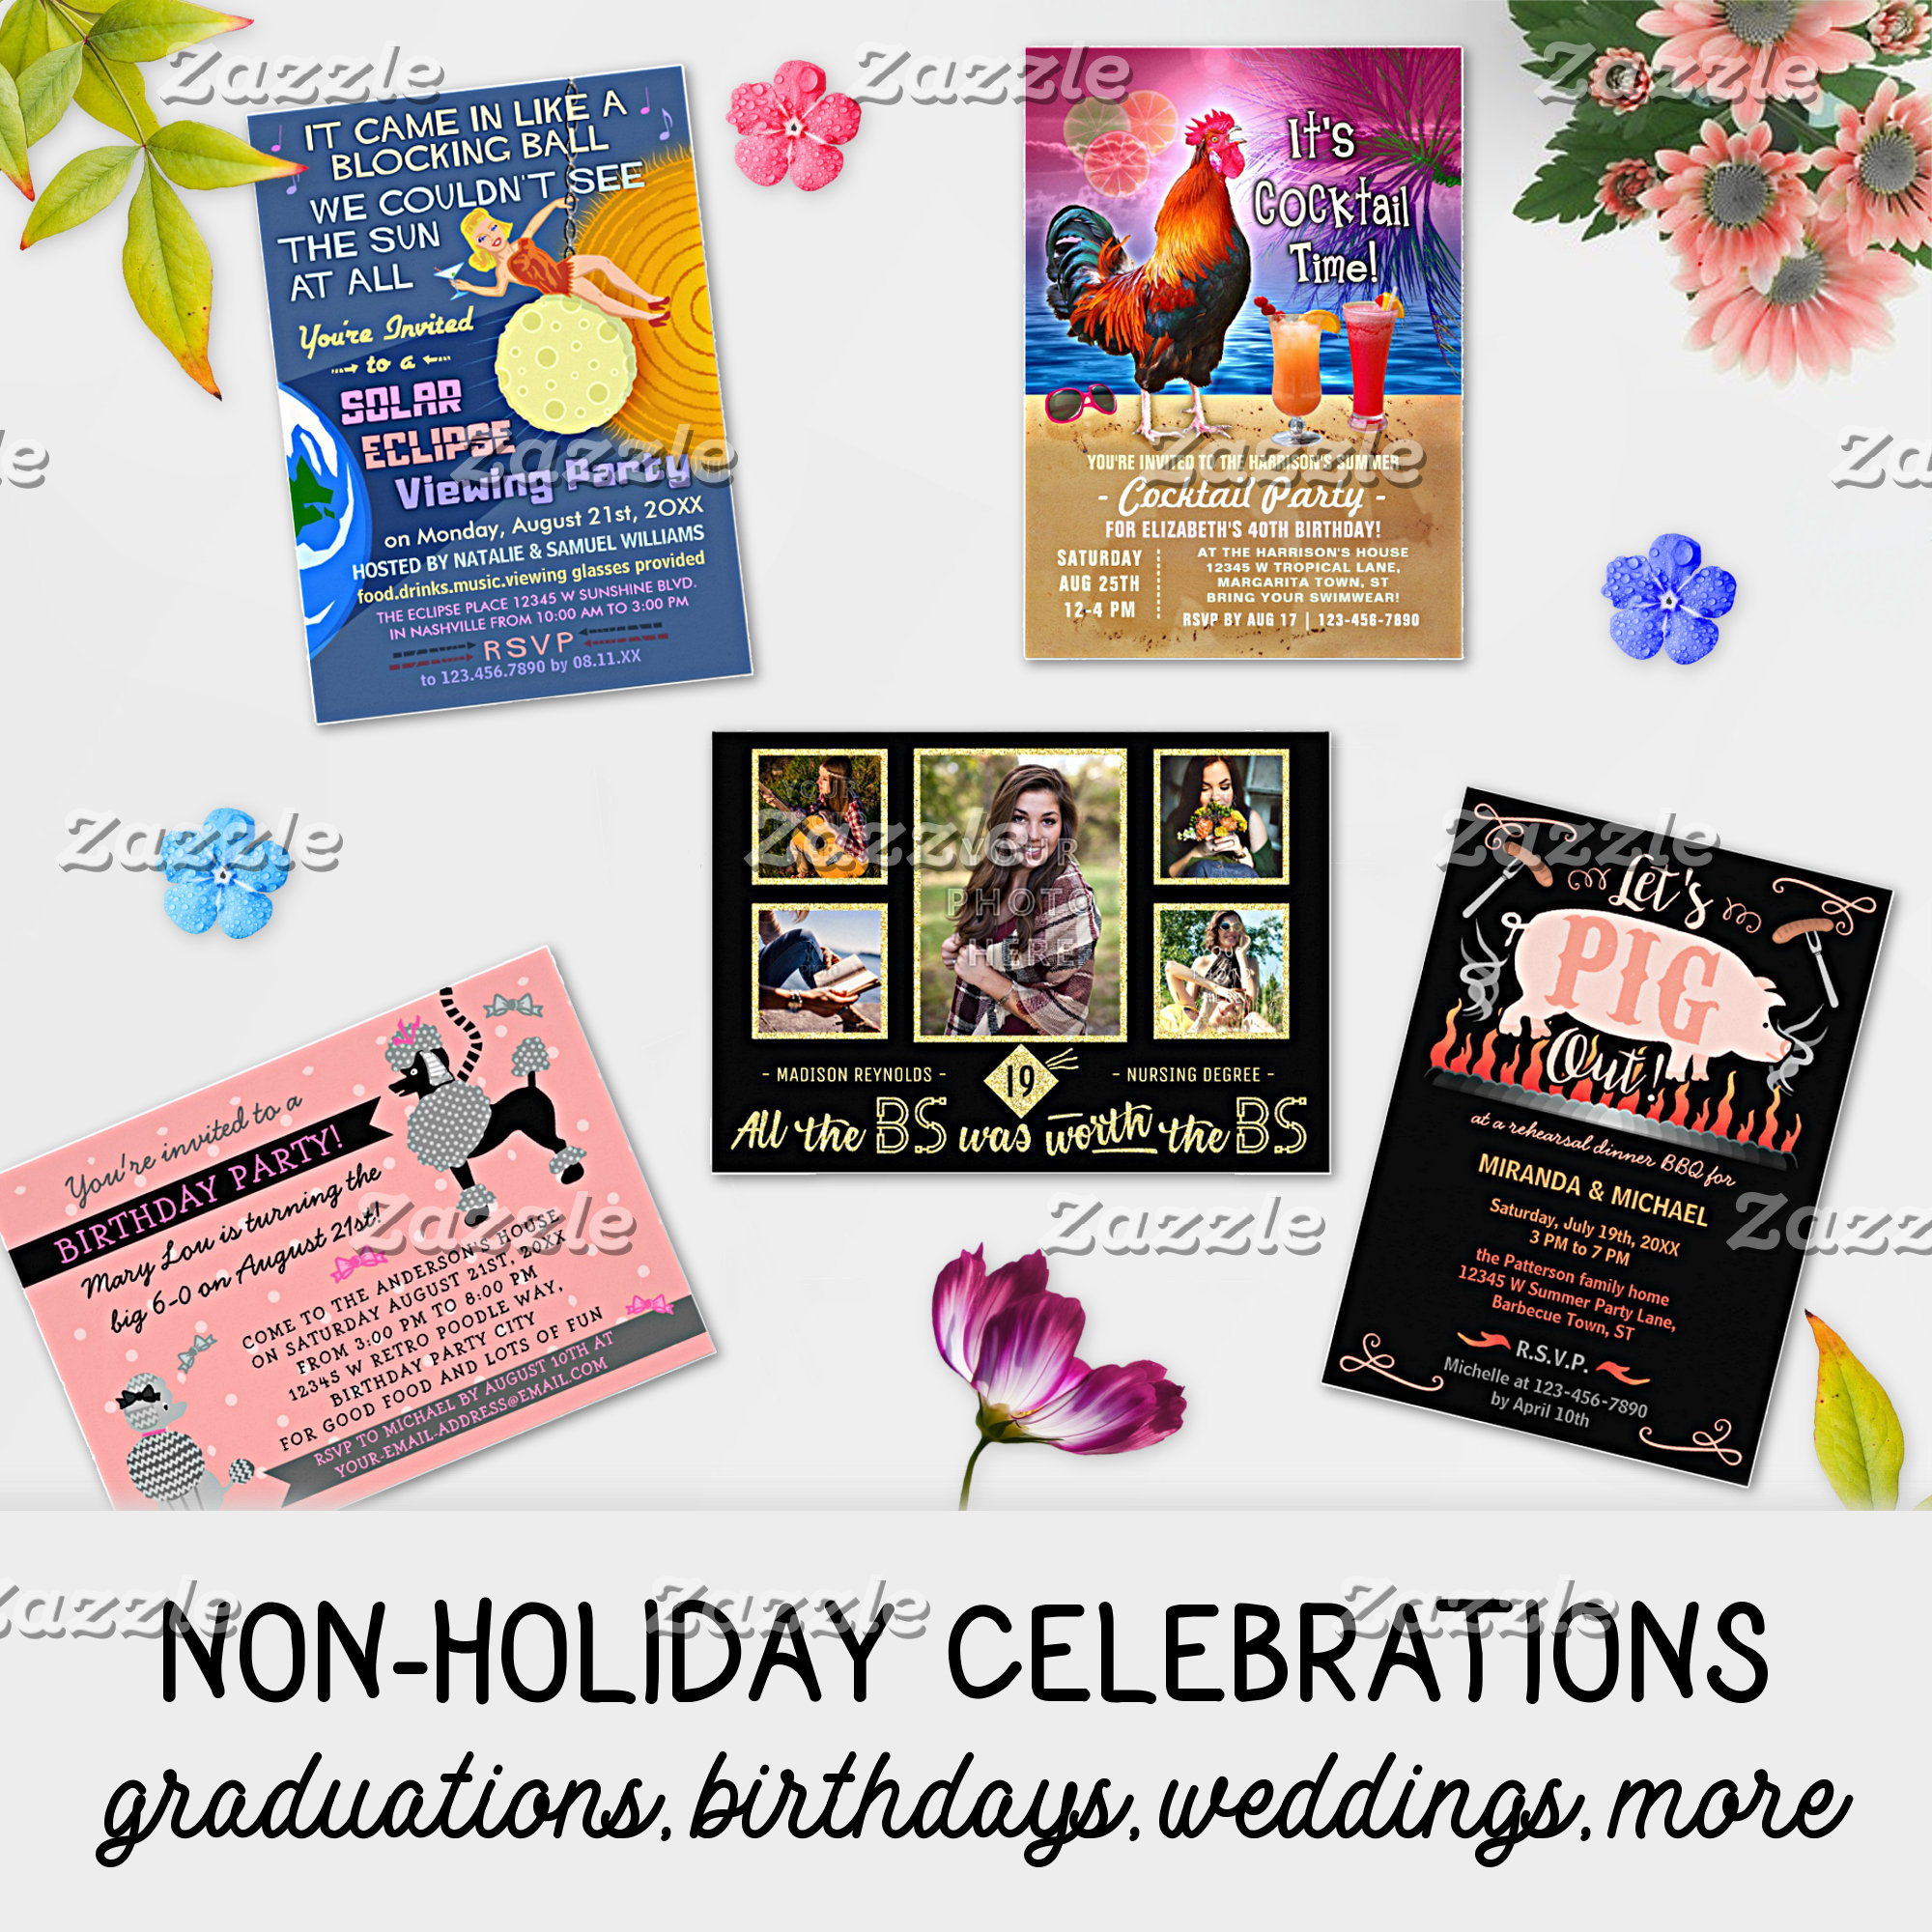 NON-HOLIDAY CELEBRATIONS